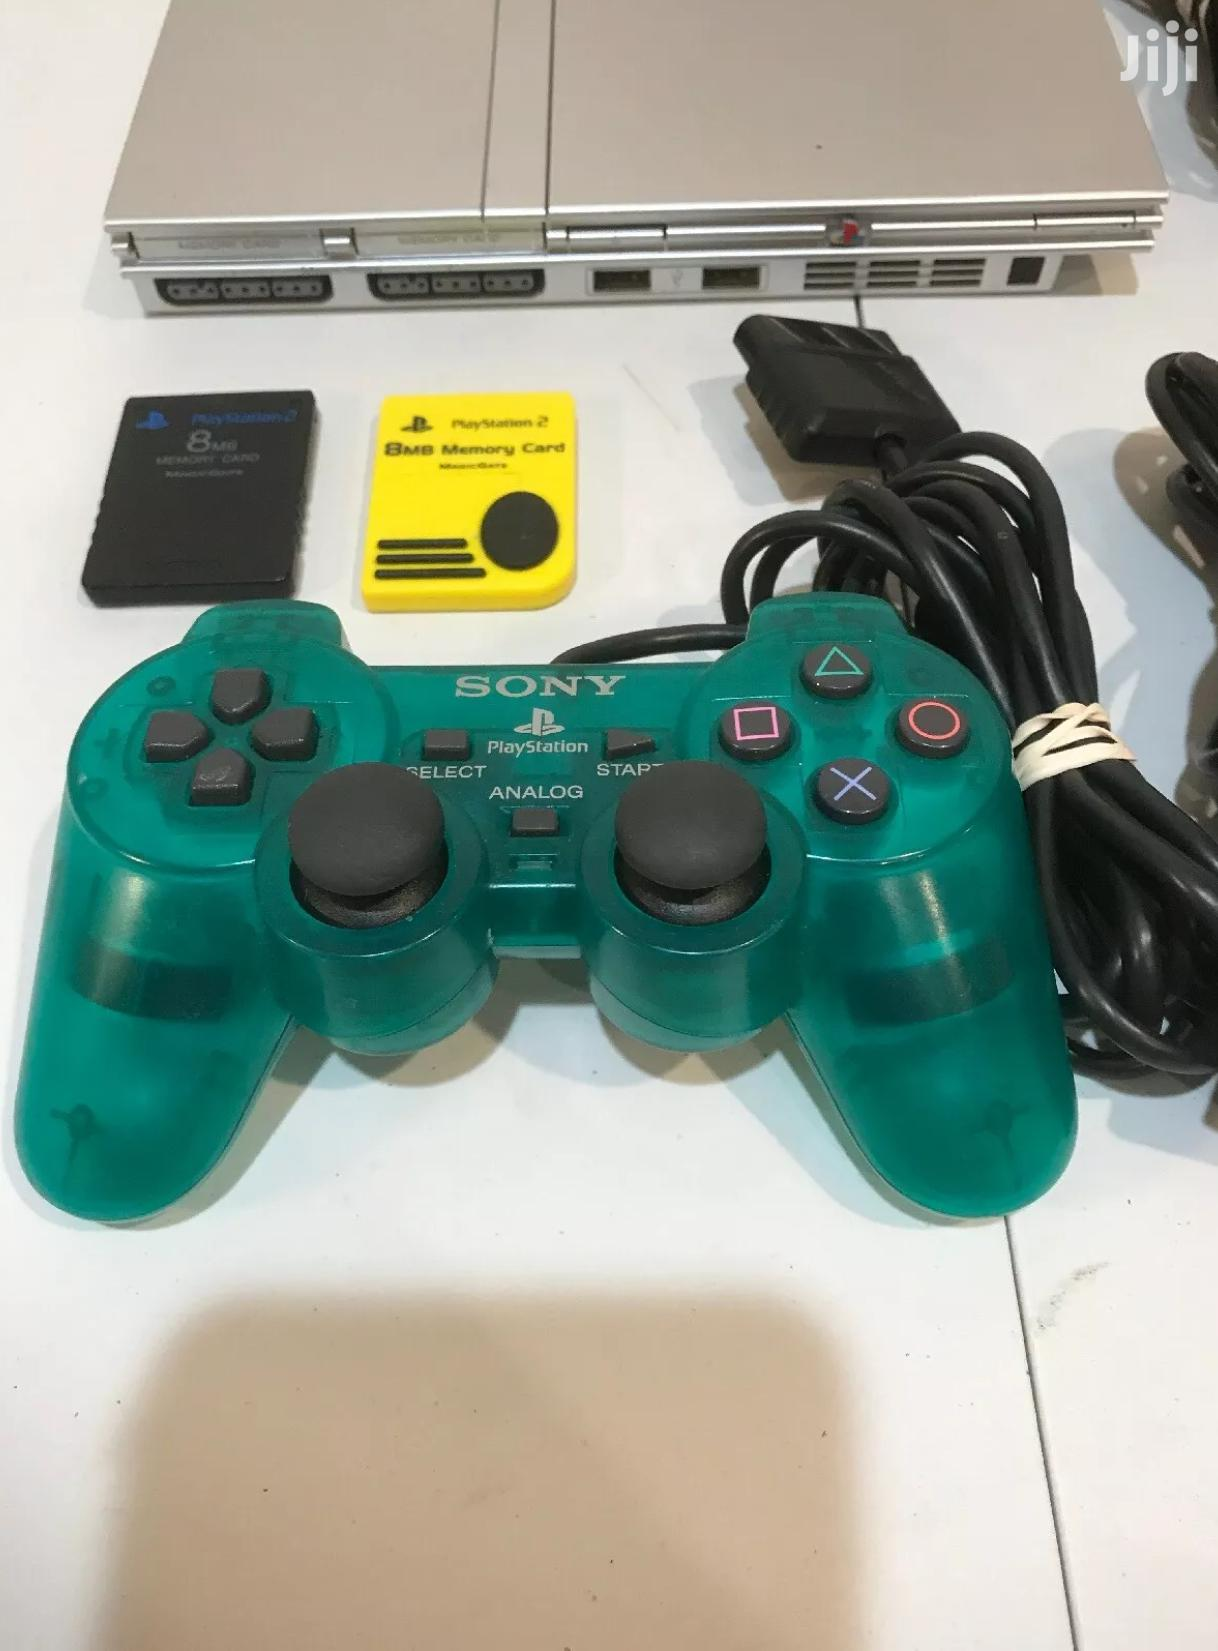 Archive: Ps2 Slim With 30games Installed On 120gb External Hdd And 2 Pads